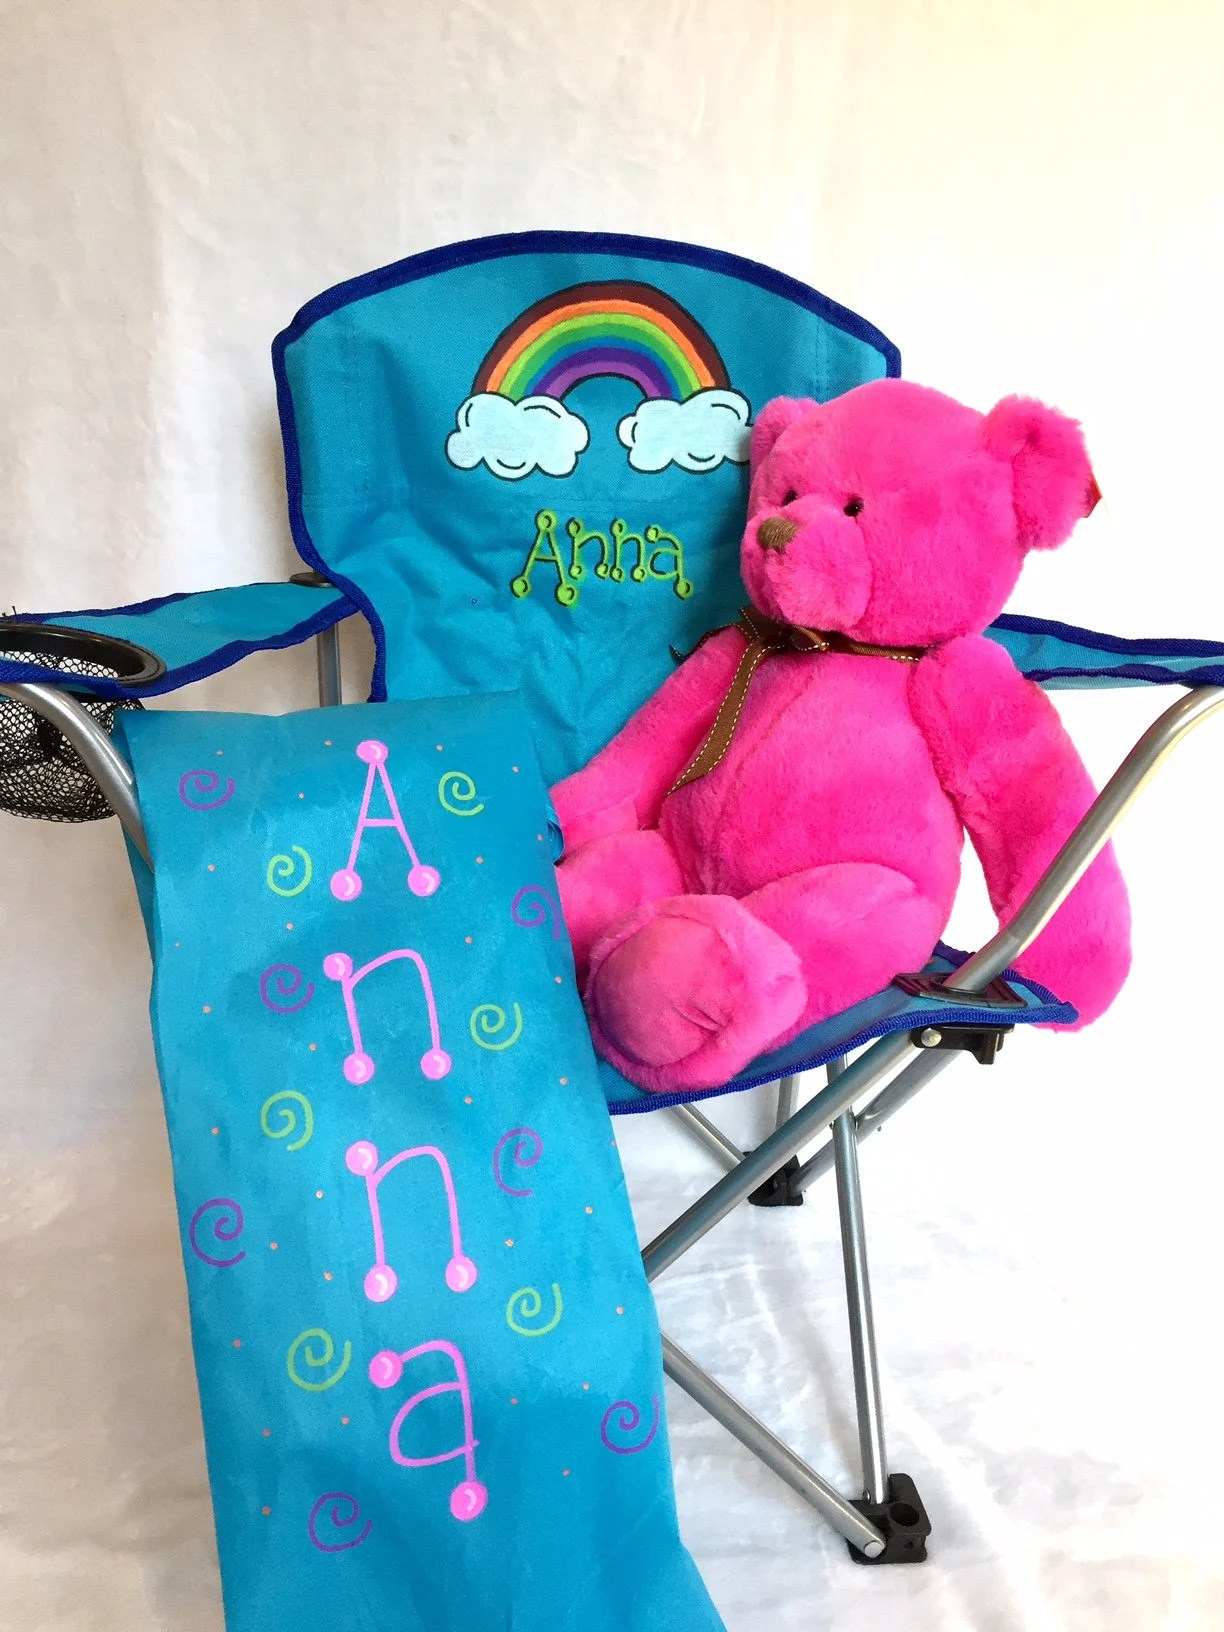 Monogrammed Toddler Chair Swypeout Toddler Plush Chairs Personalized